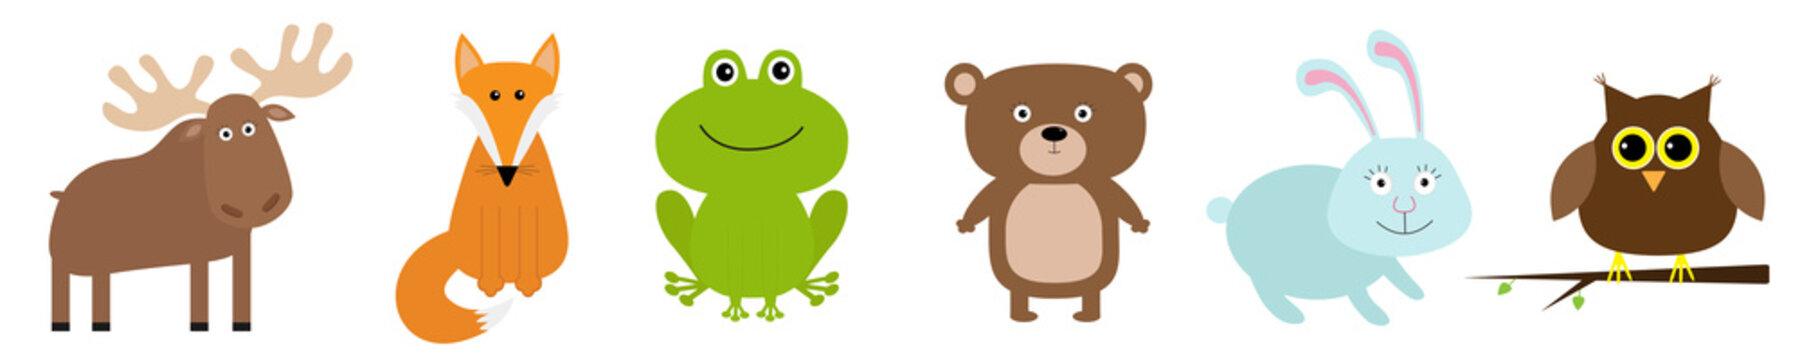 Forest animal set line. Bear hare rabbit fox moose owl frog icon. Kids education cards. Flat design. Cute kawaii cartoon funny baby character. White background. Isolated.